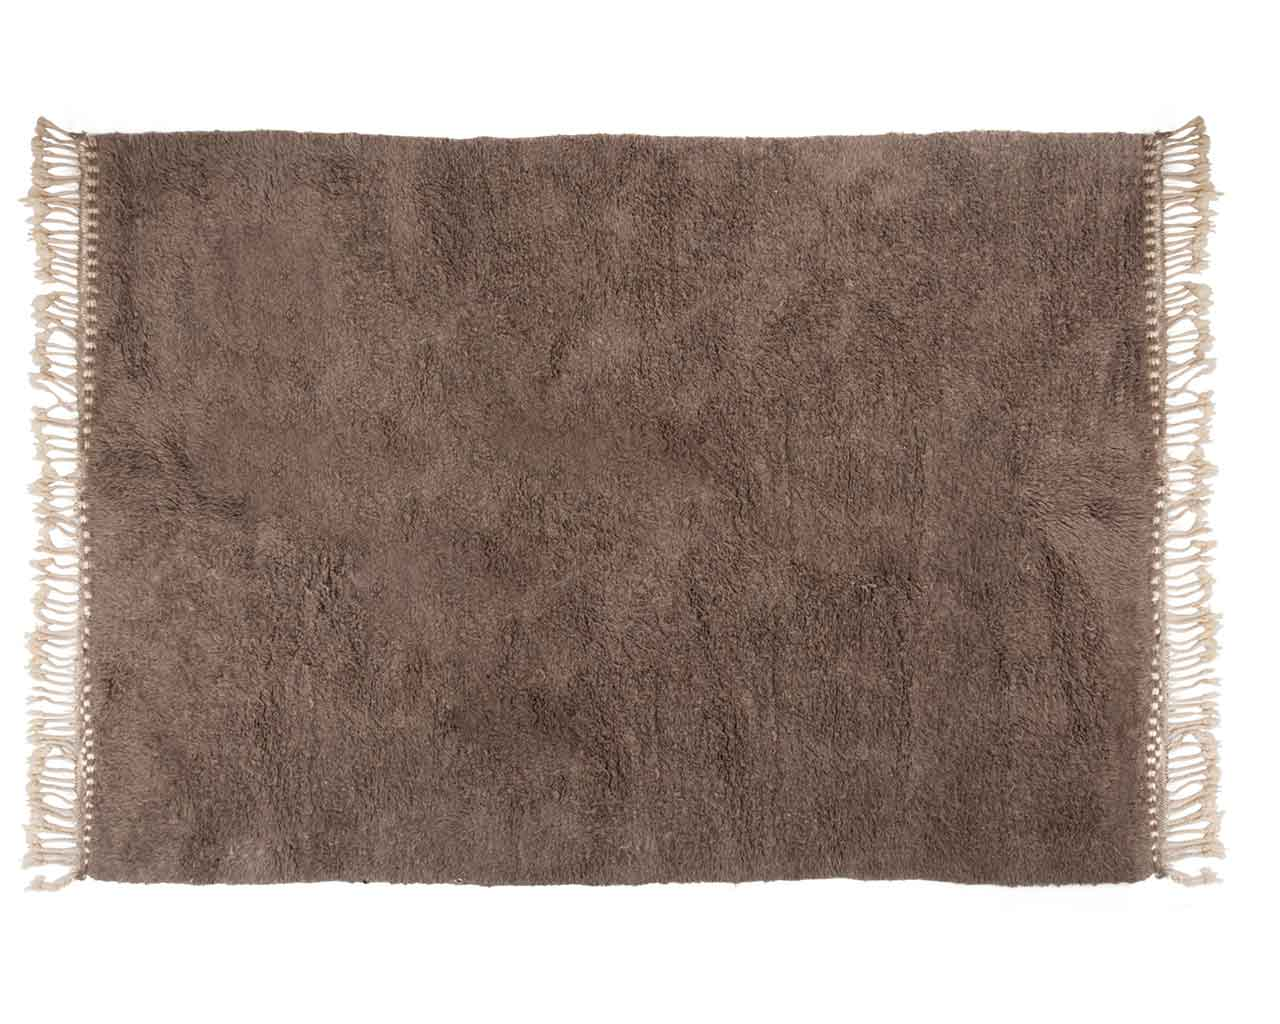 woollen grey carpets luxurious high pile 1